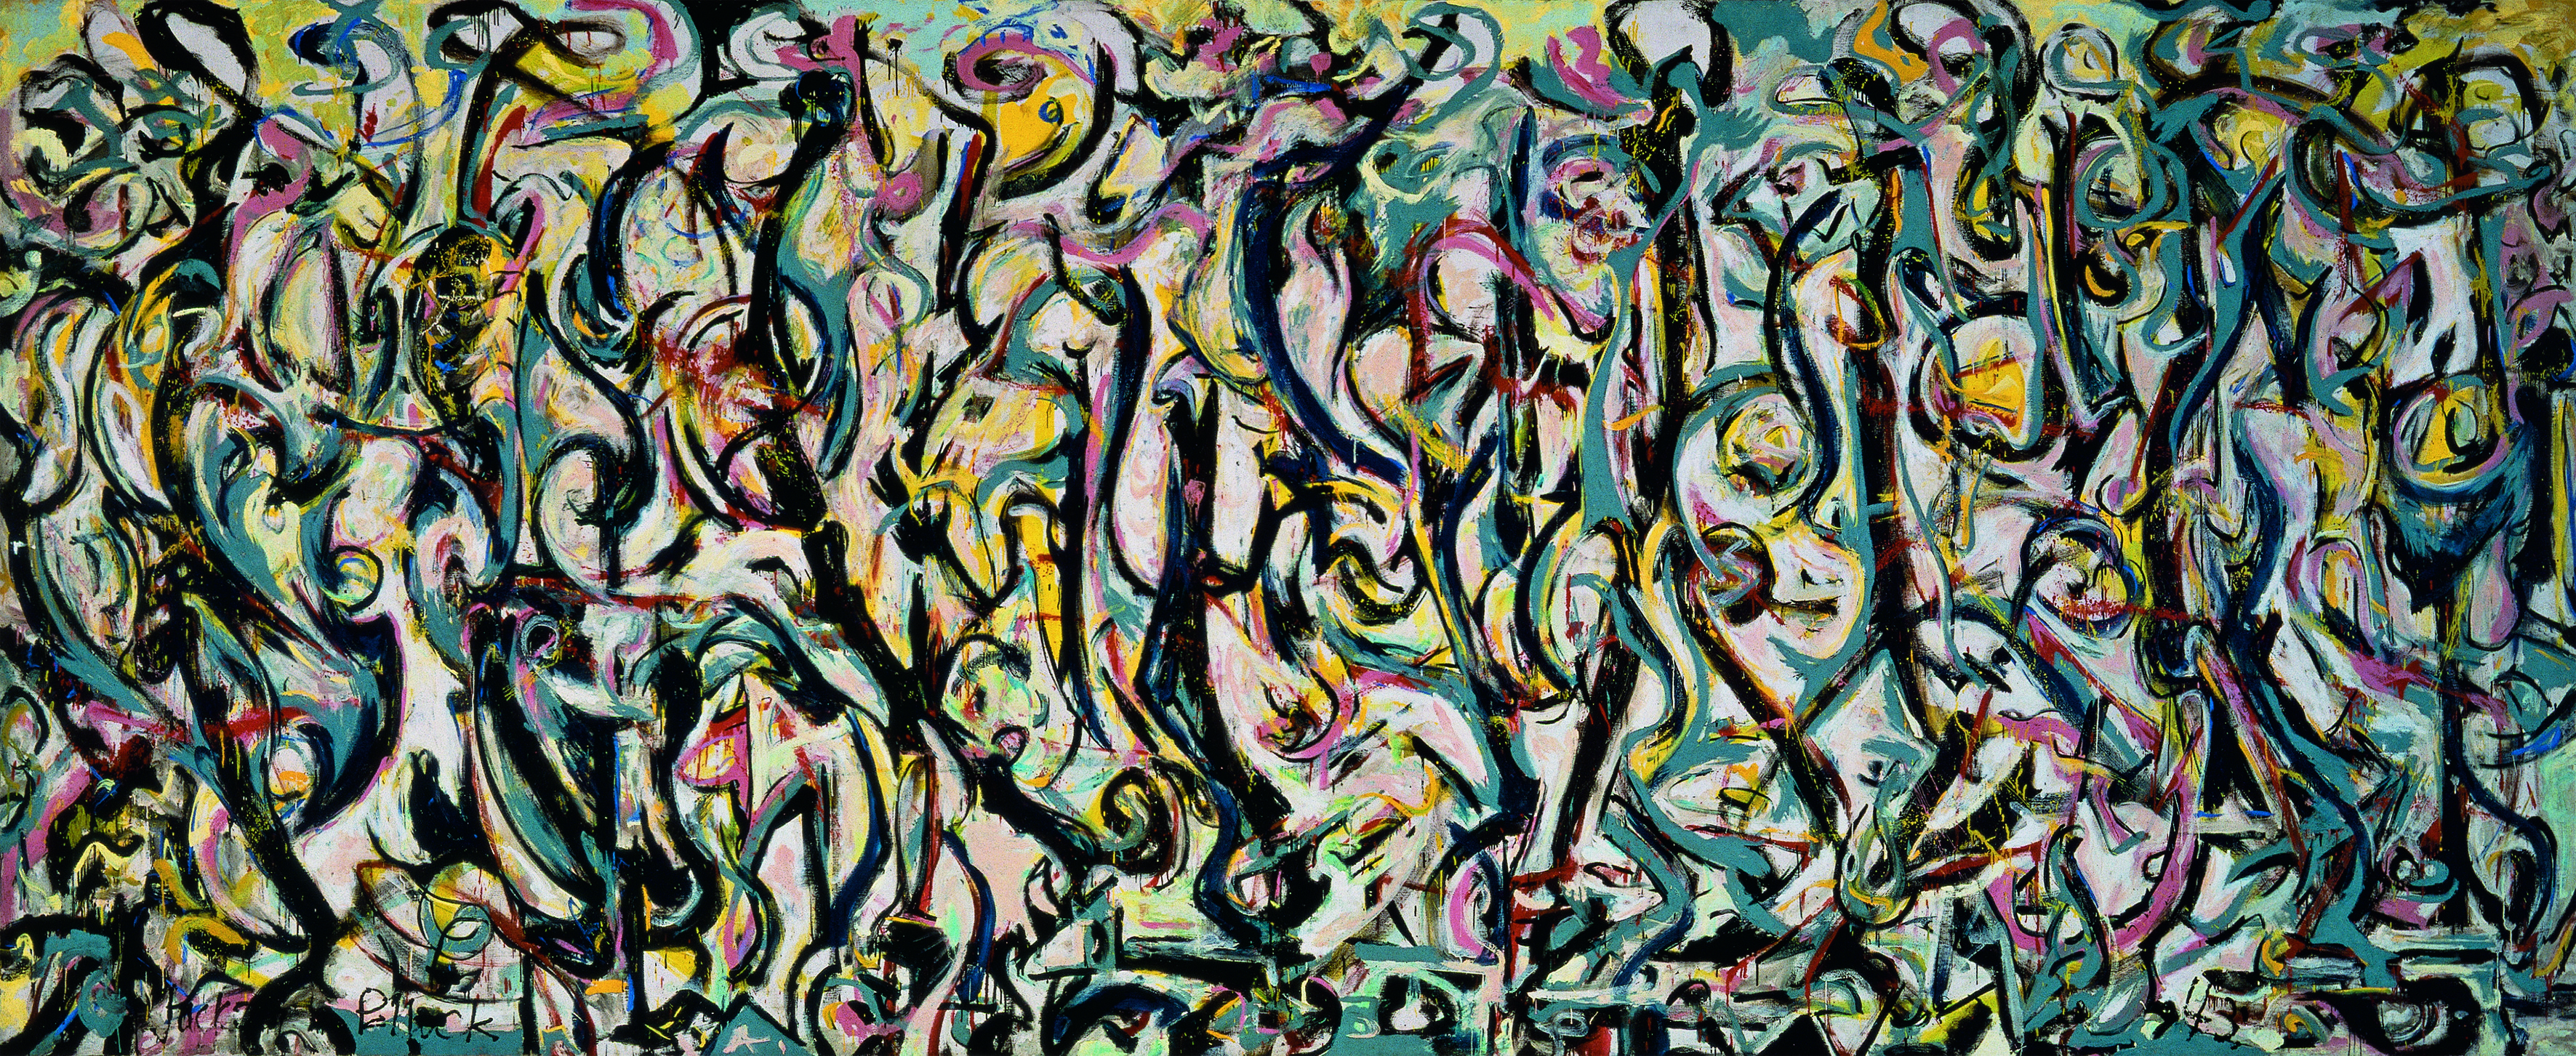 "Jackson Pollock Mural, 1943 Oil and casein on canvas, 7' 11"" x 19' 10"" Gift of Peggy Guggenheim, 1959.6 University of Iowa Museum of Art Reproduced with permission from The University of Iowa"